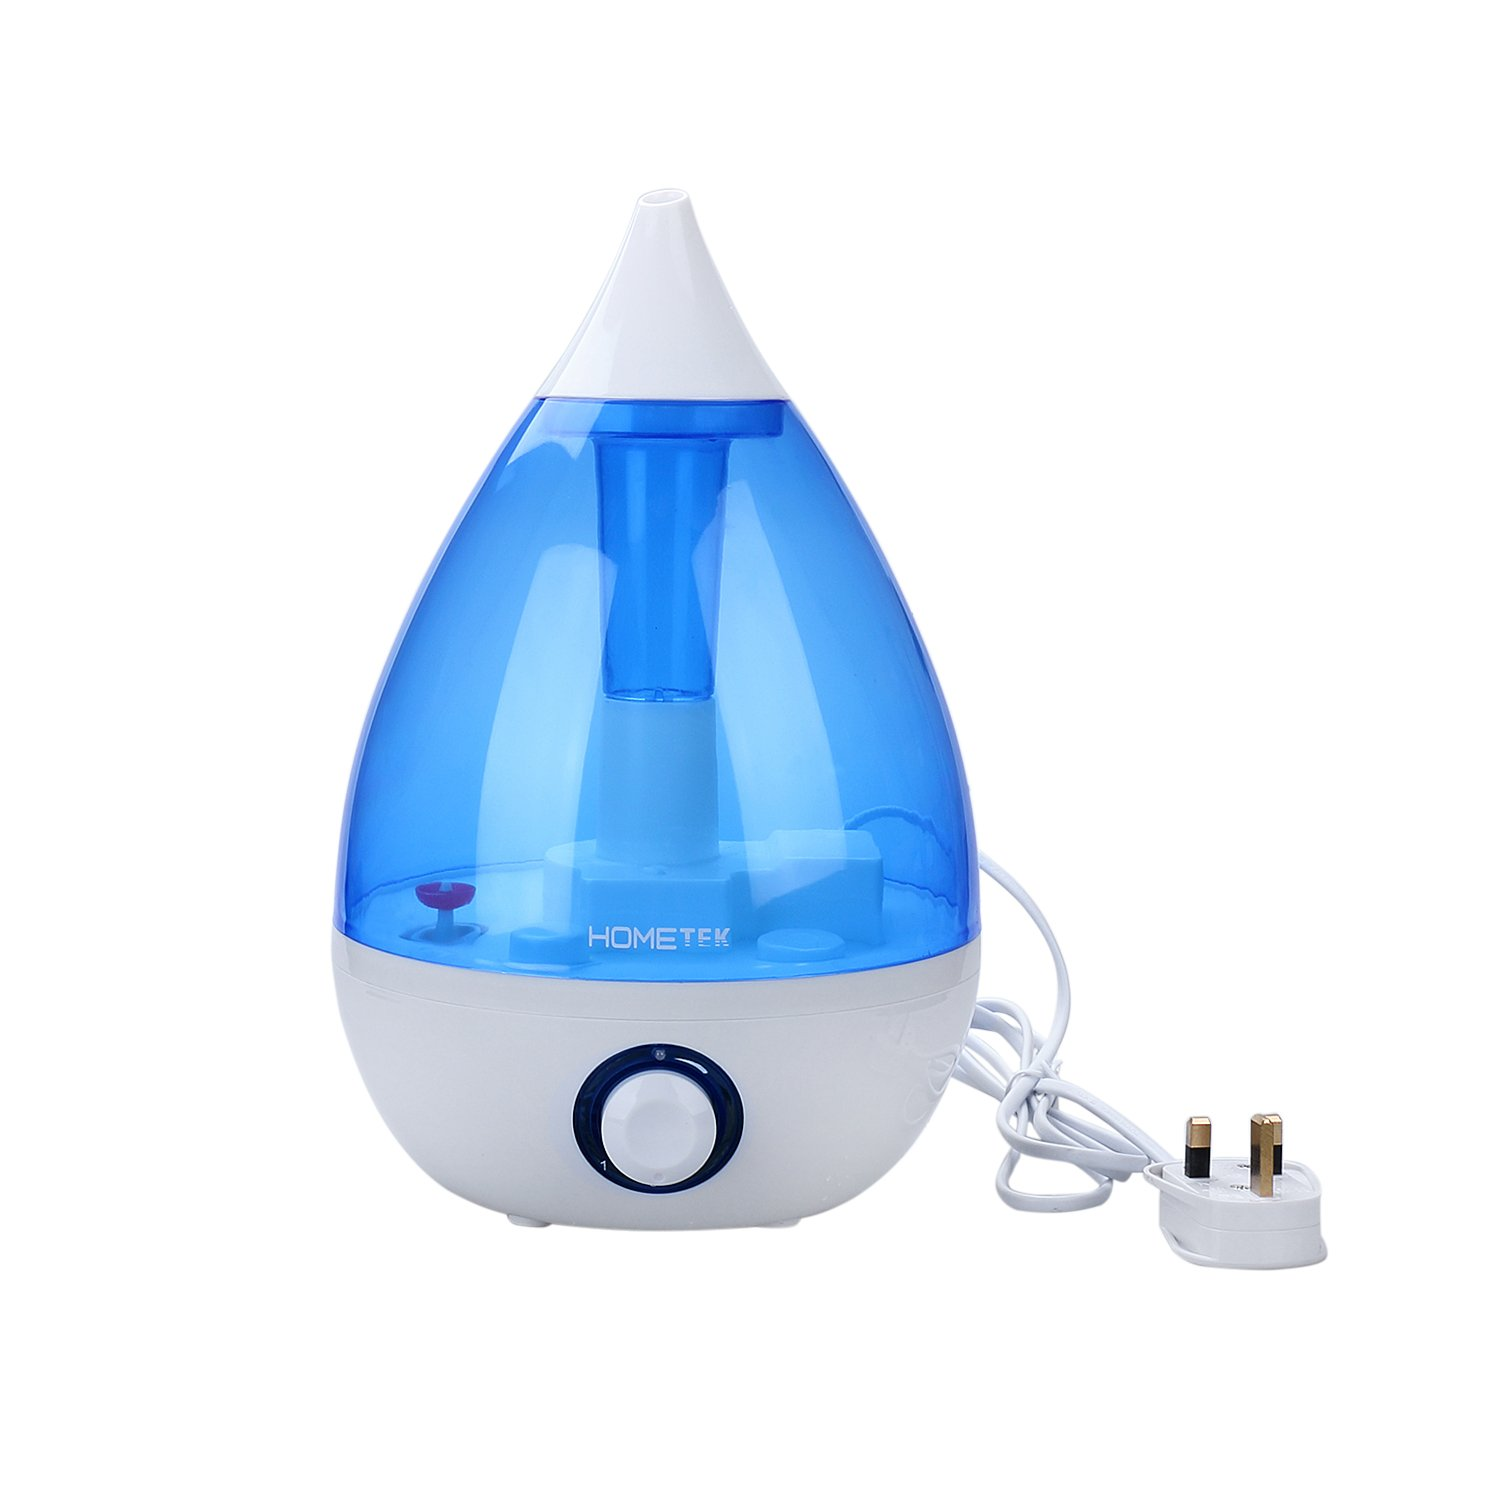 The Best Humidifiers for Plants Urban Turnip #036FC8